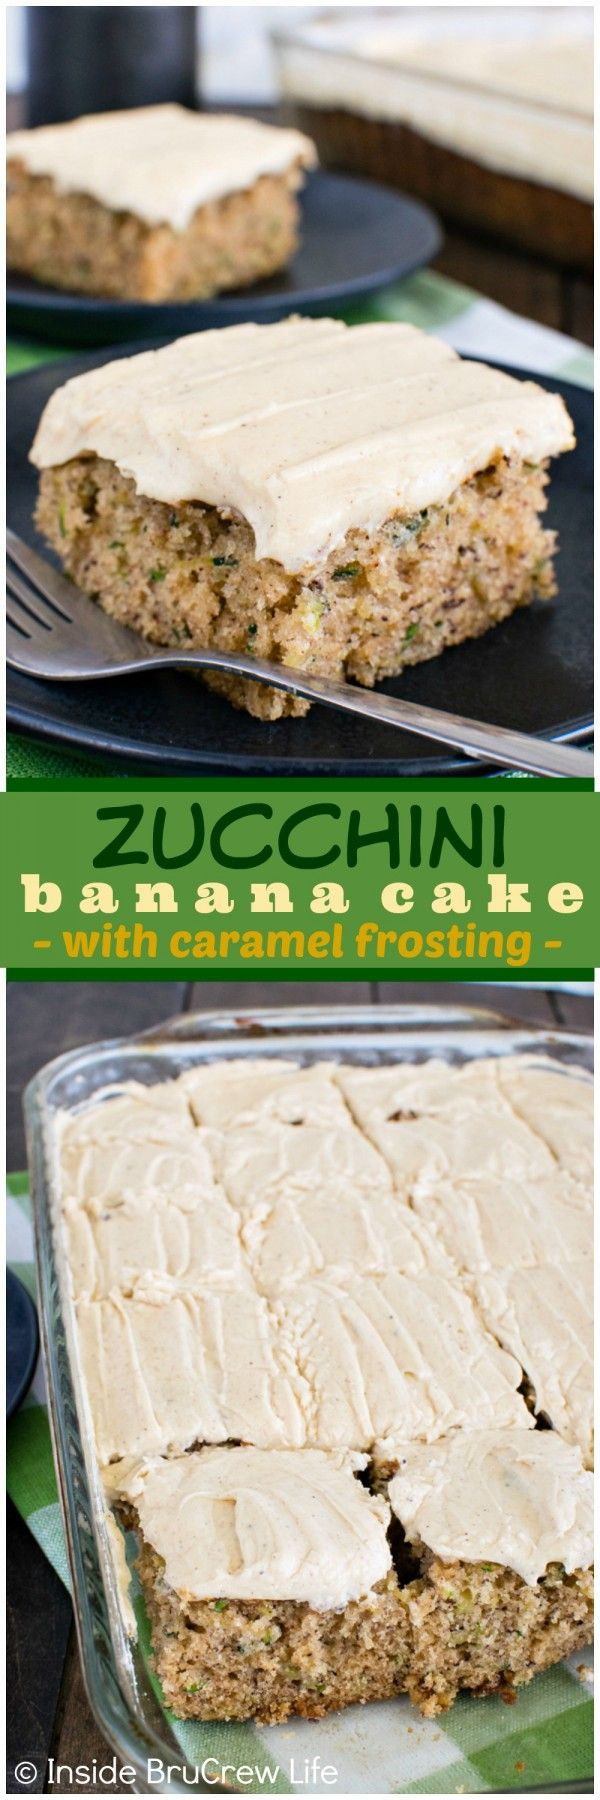 This Zucchini Banana Cake is seriously such a popular way way to use up the extra veggies from the garden! Awesome dessert recipe!